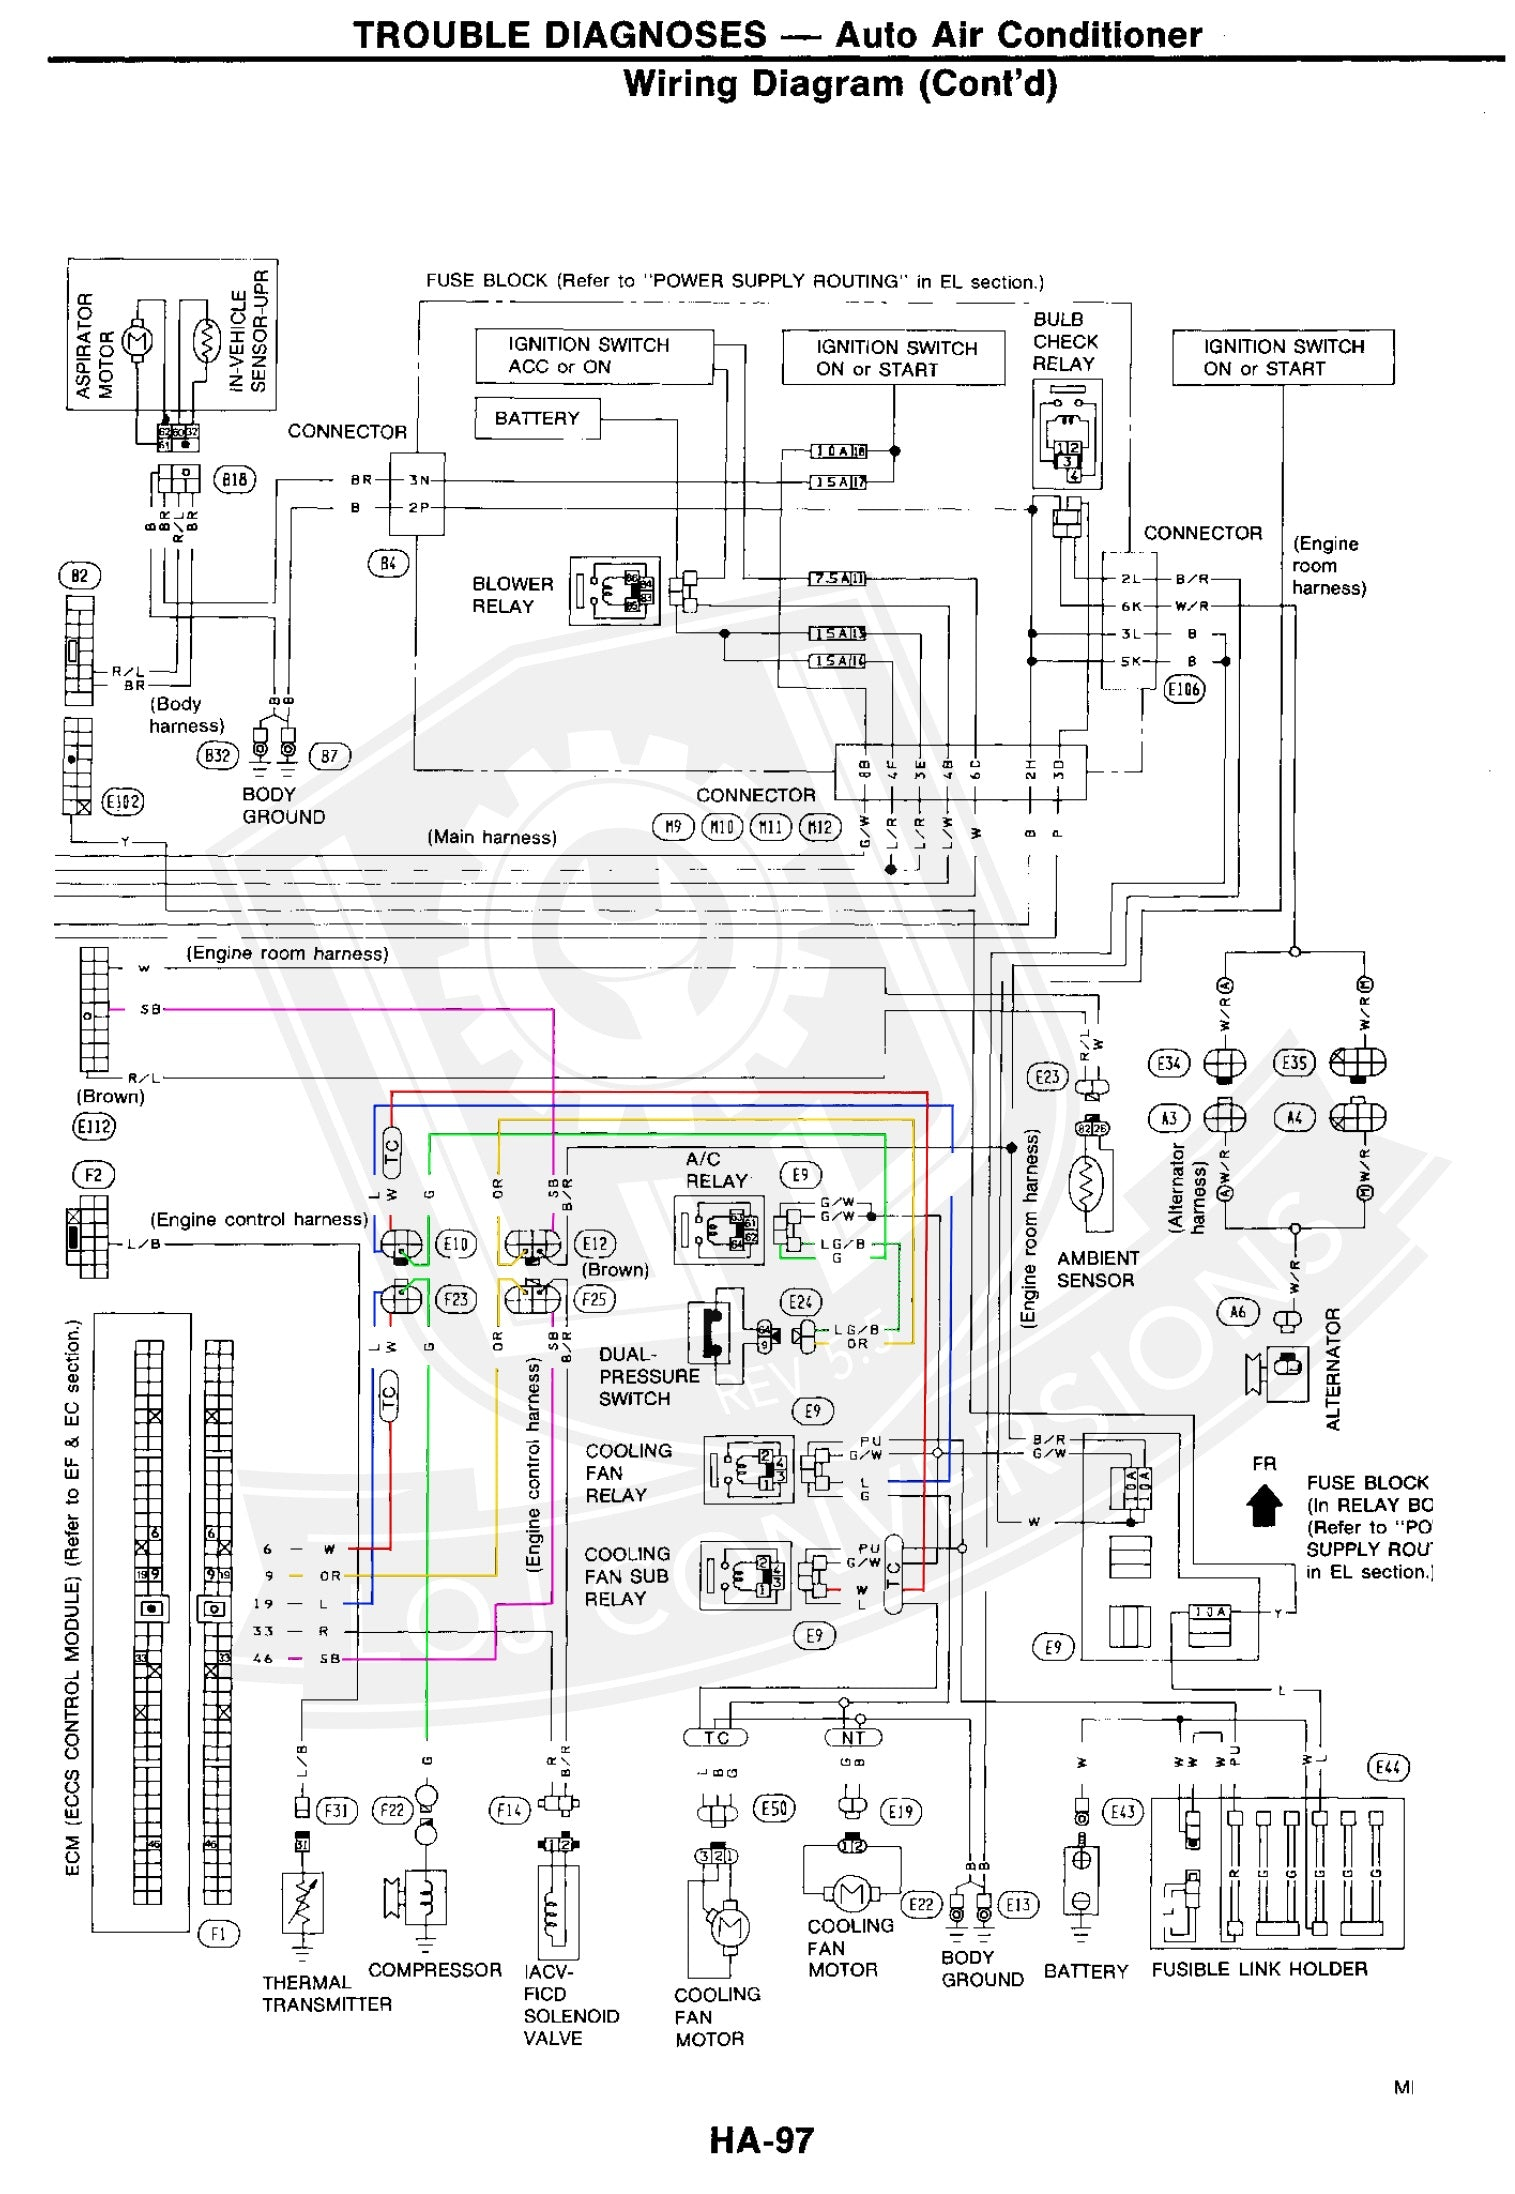 wiring the ac in a 300zx engine conversion loj conversions rh lojkits com  Radio Wiring Diagram